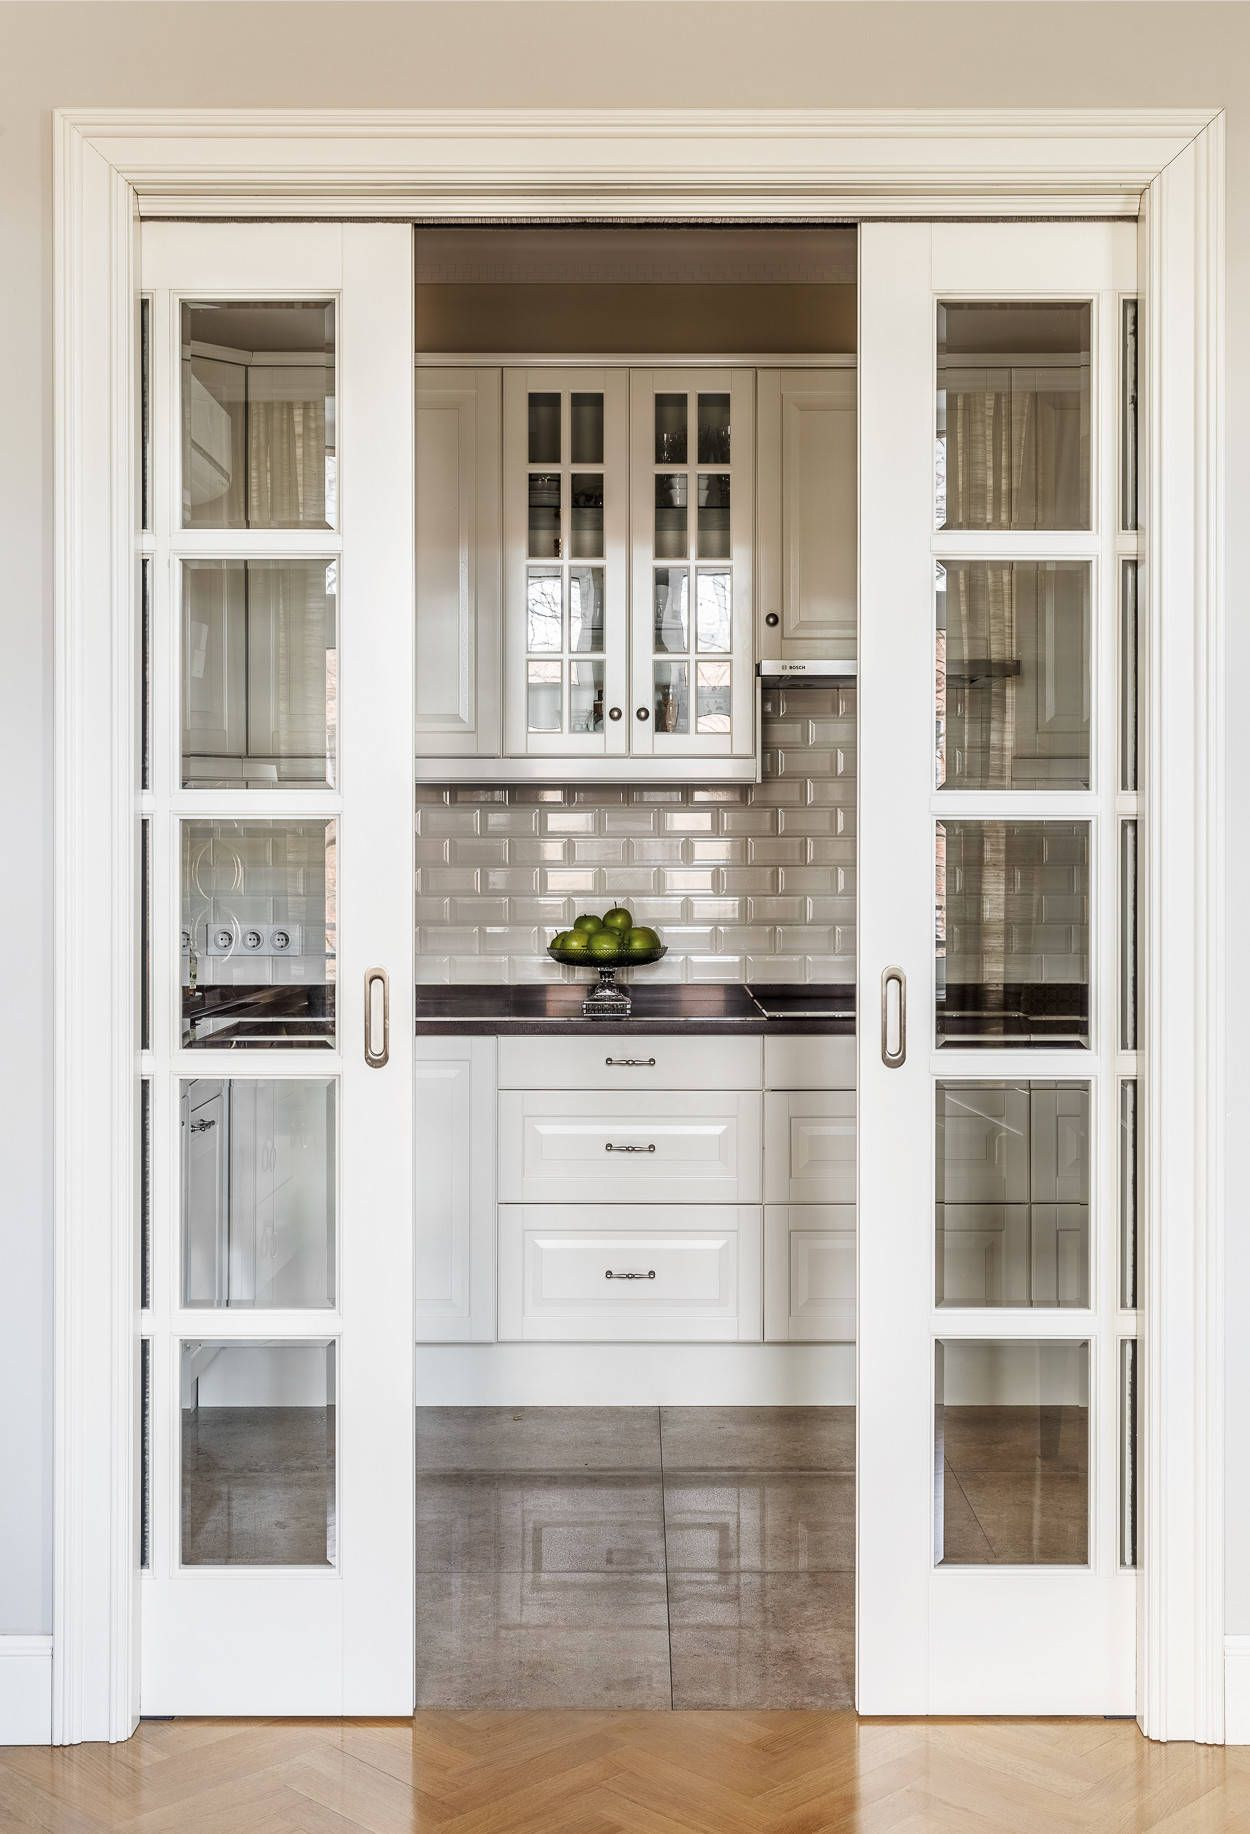 43 Well Executed Ideas for a Stylish Kitchen (Photo Gallery)